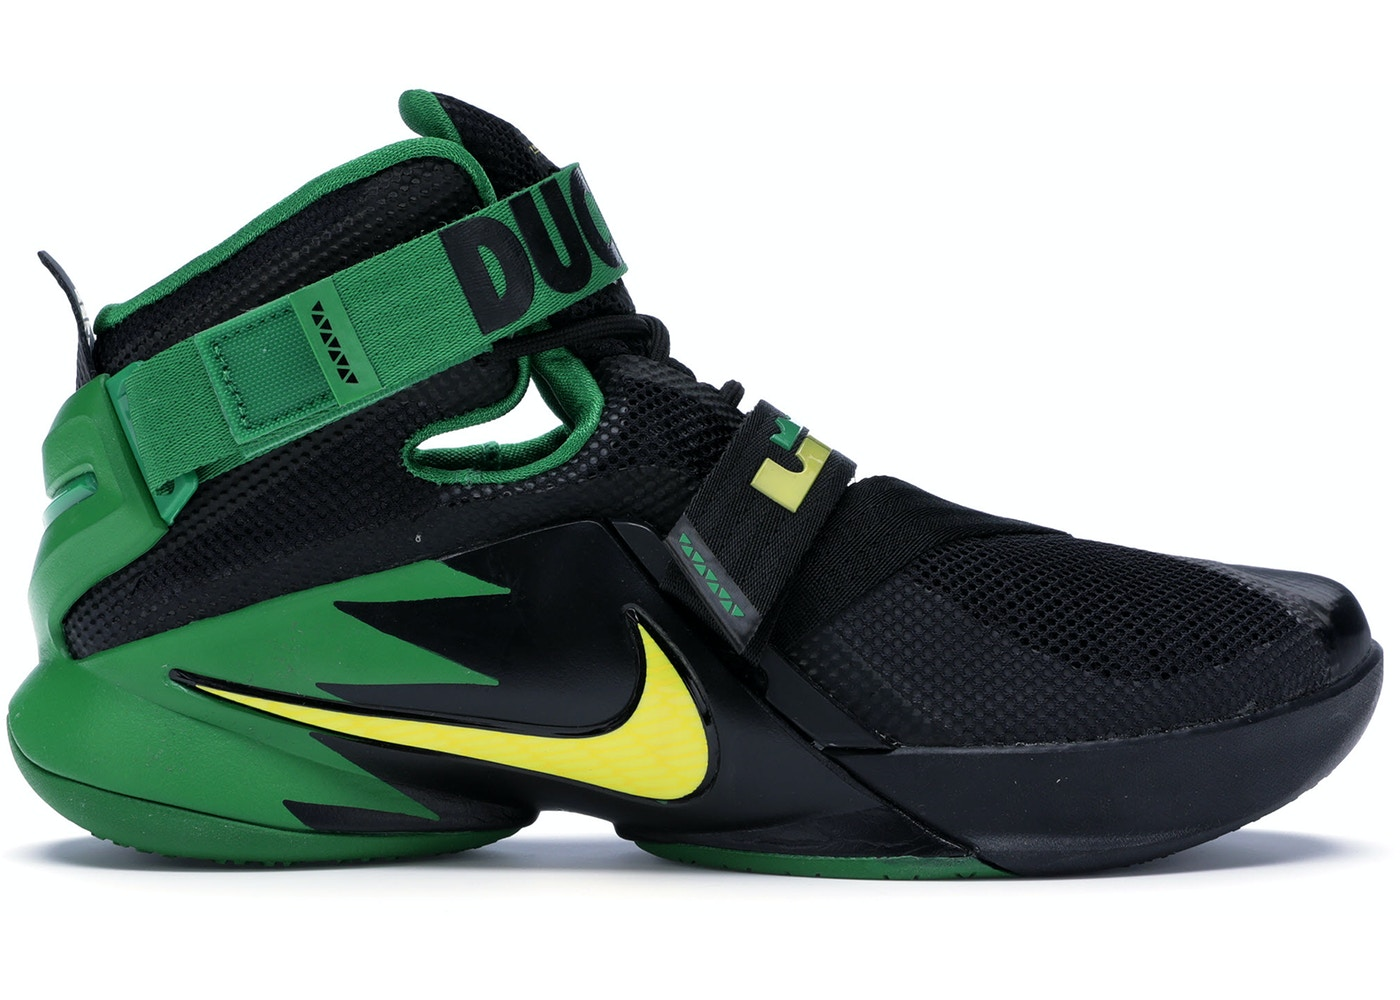 competitive price c432f 37fed Buy Nike LeBron Zoom Soldier Shoes & Deadstock Sneakers